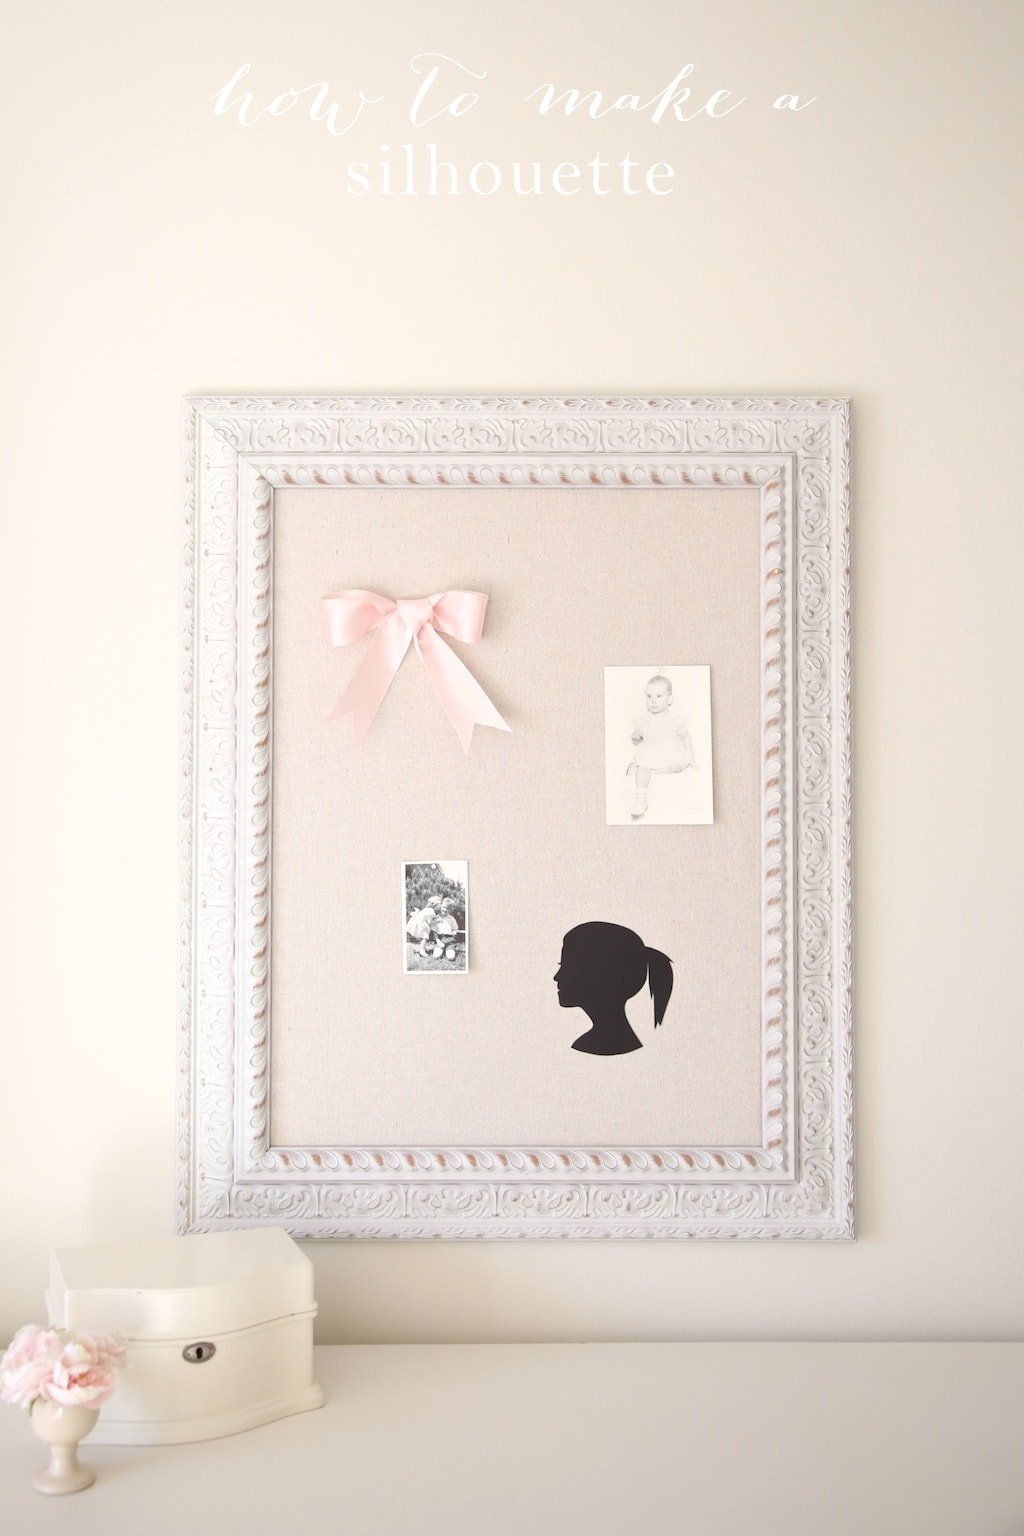 http://julieblanner.com/wp-content/uploads/2015/02/how-to-make-a-silhouette.jpg